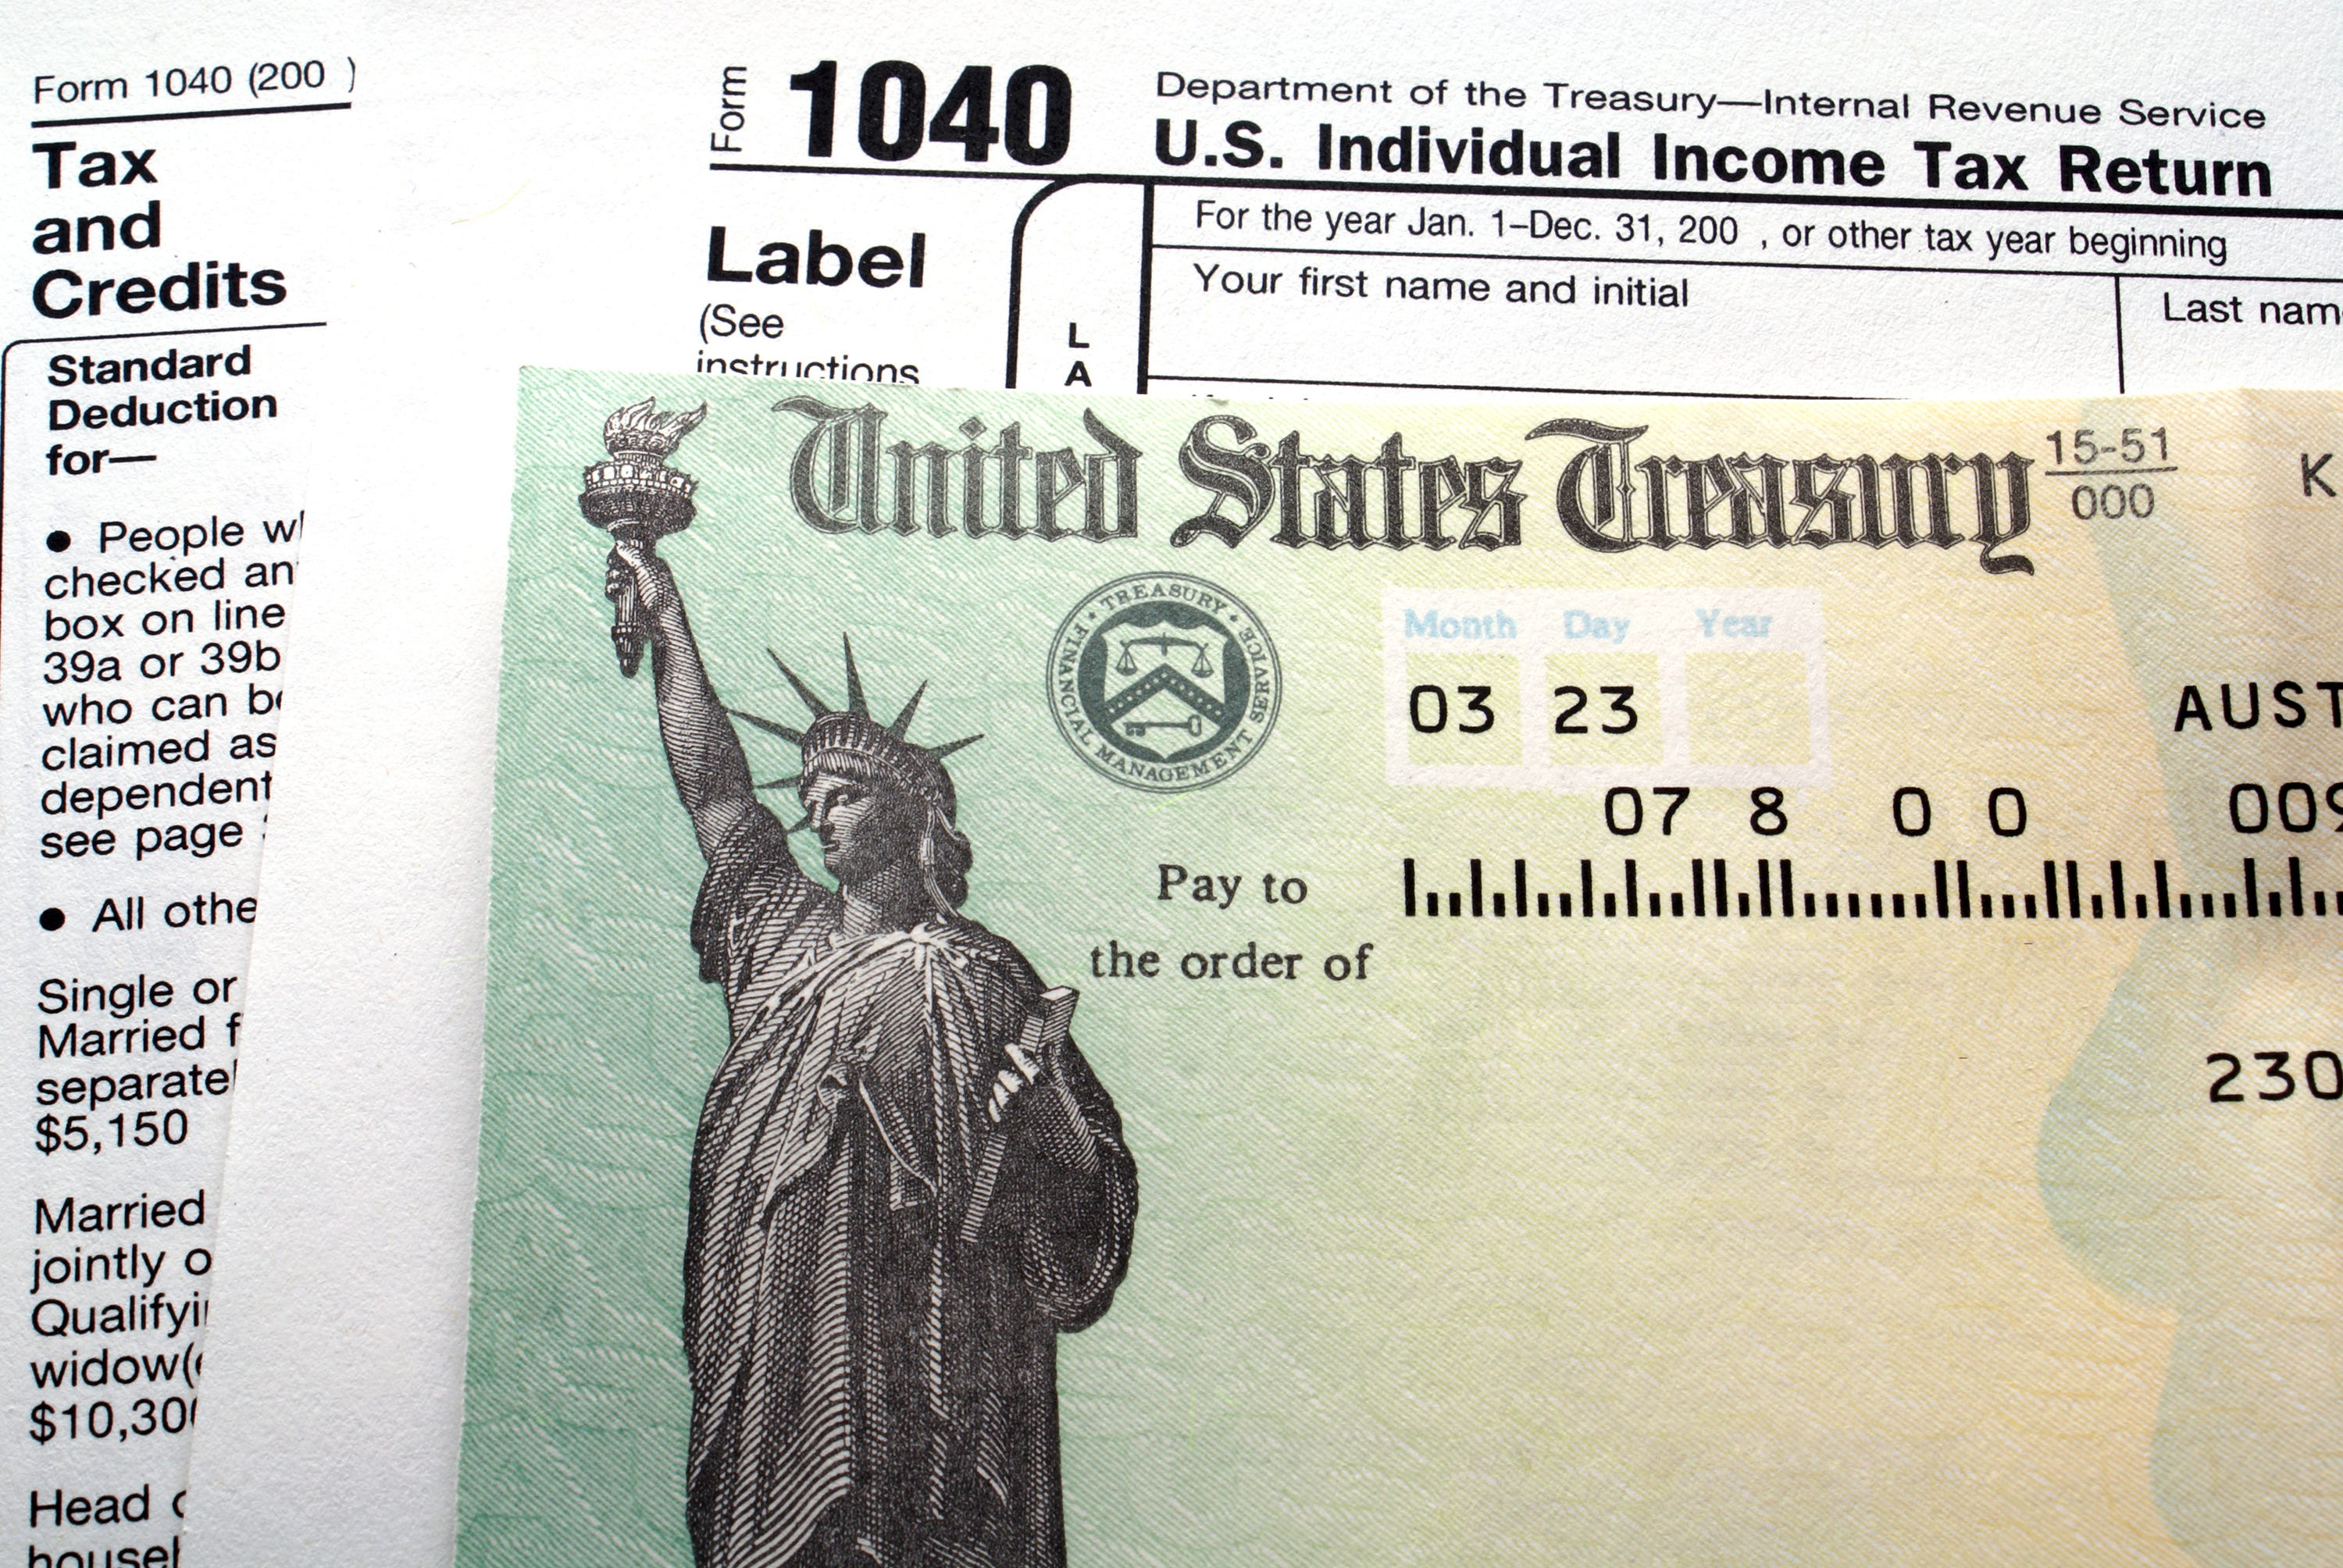 Refund boosting tax changes, Social Security COLA made news in 2015